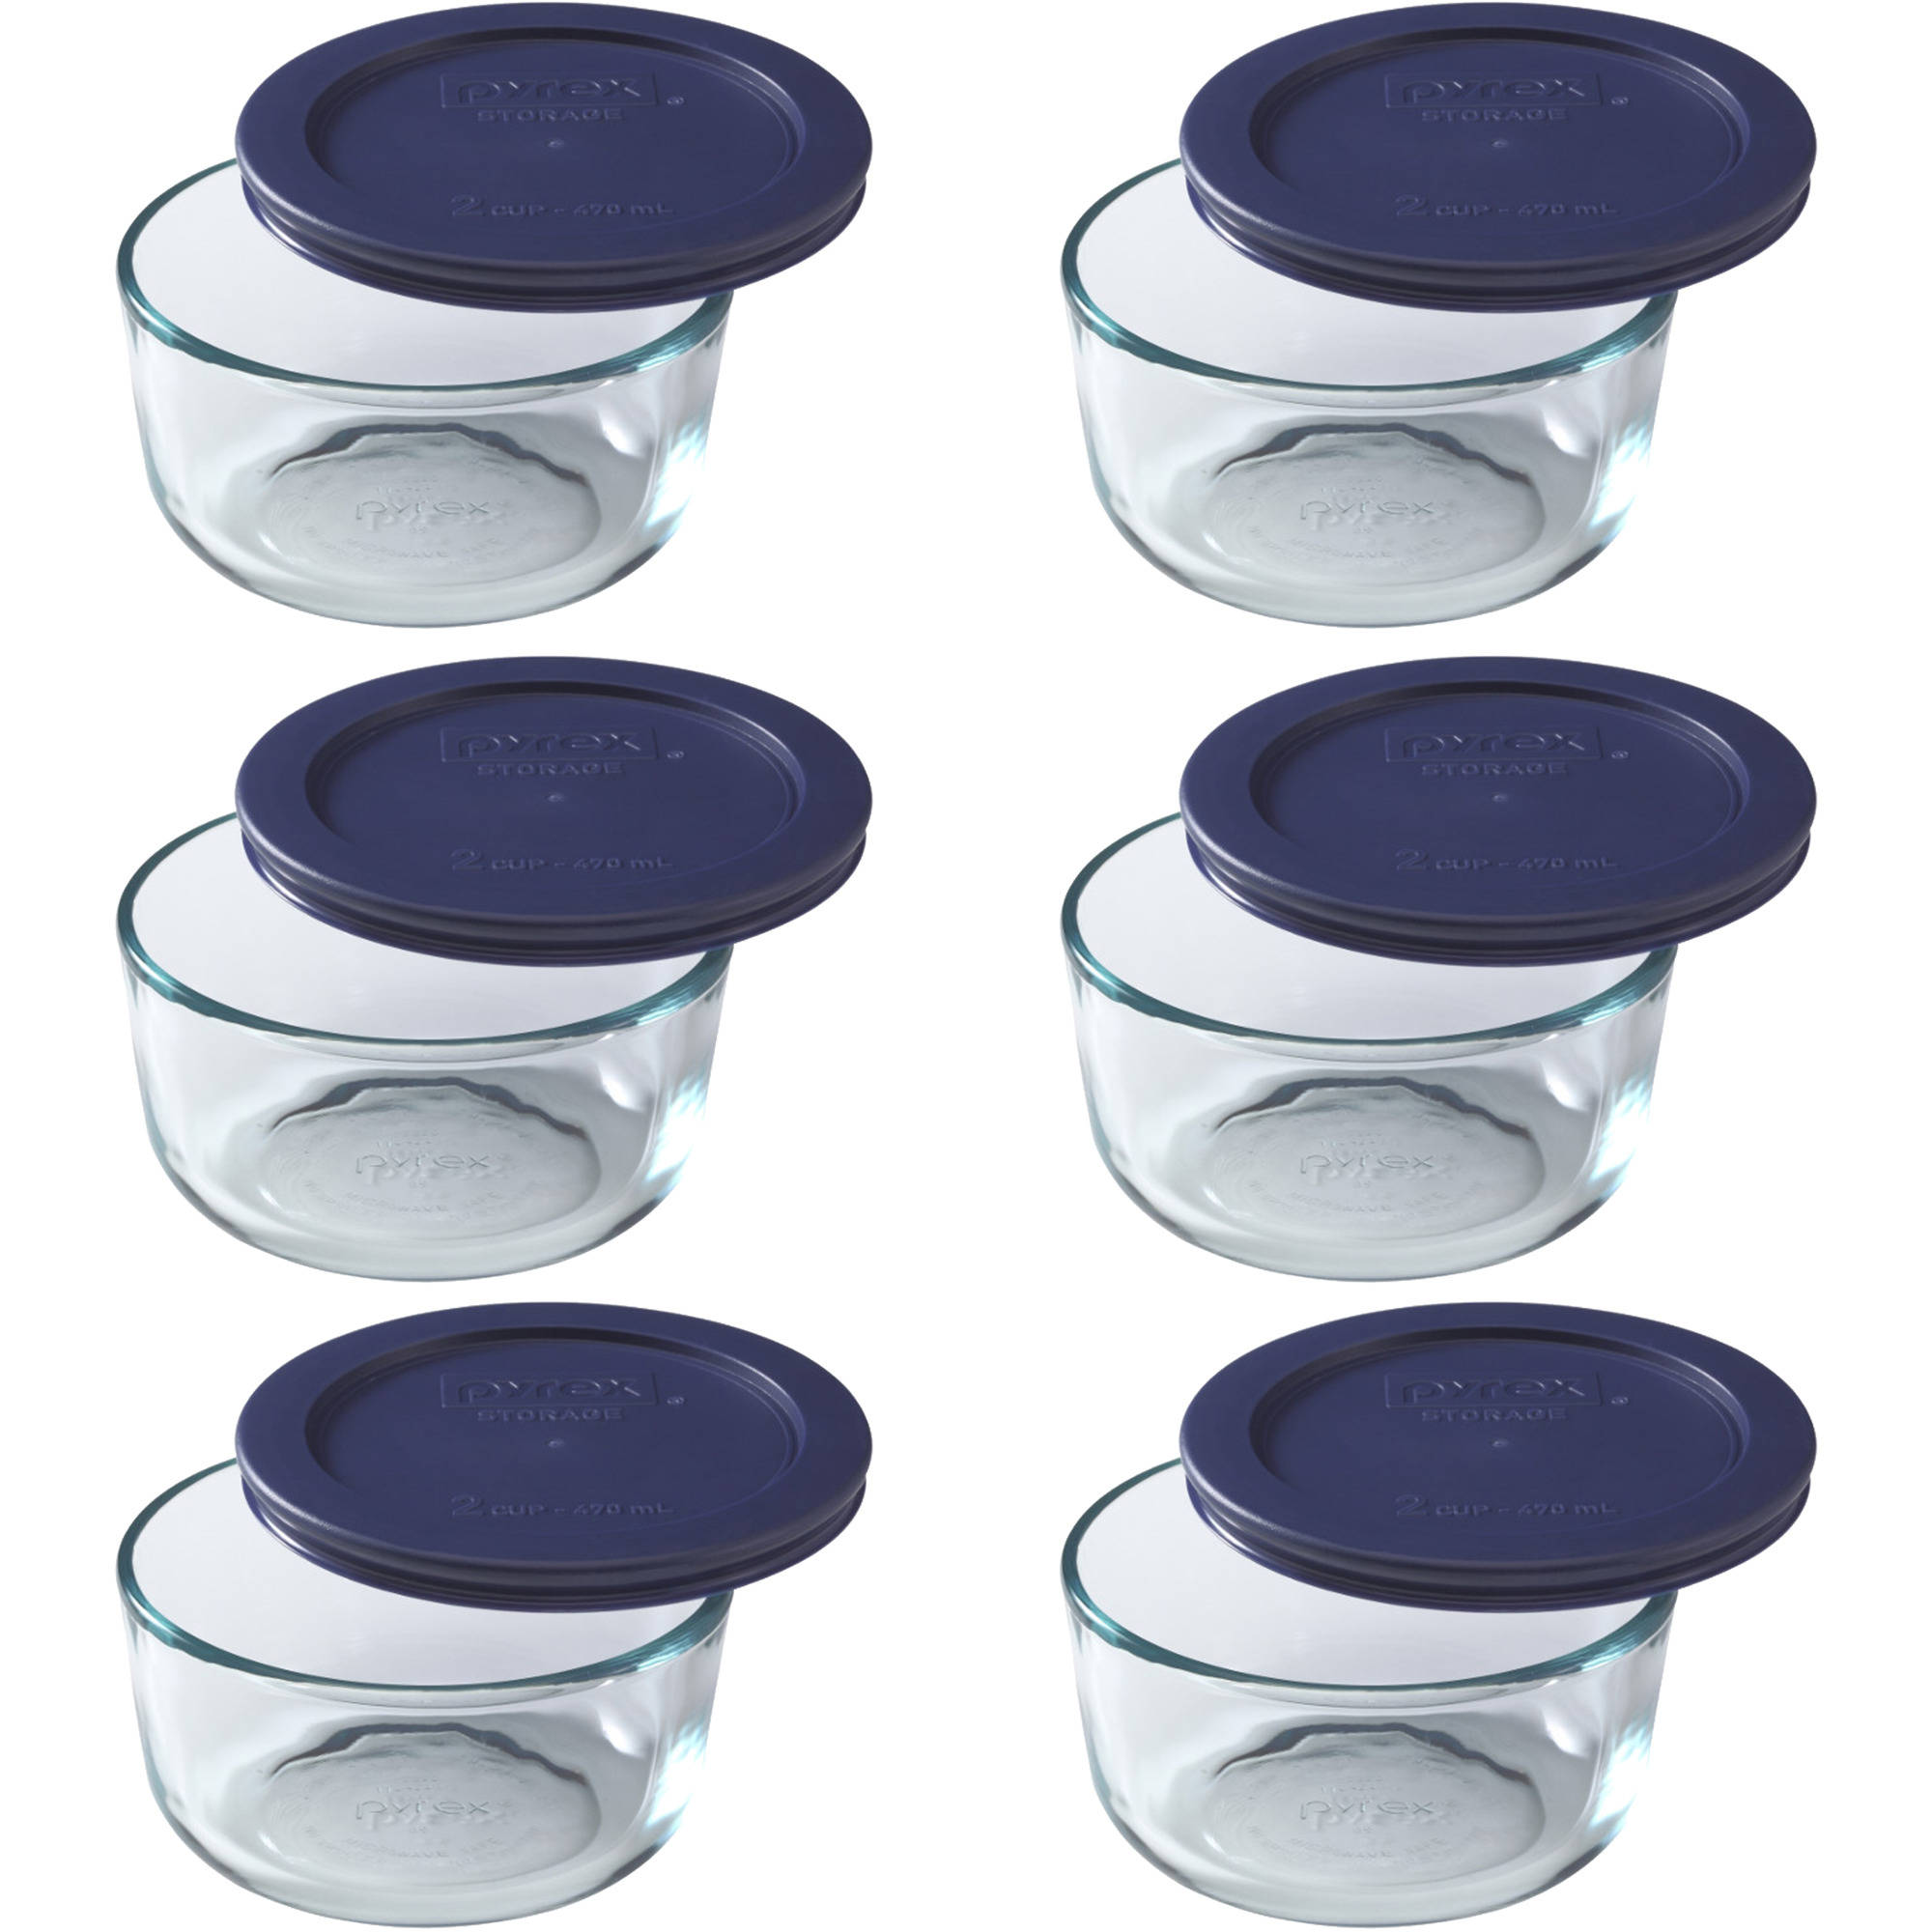 Merveilleux Pyrex 2 Cup Round Glass Storage Set With Dark Blue Plastic Cover, Set Of 6    Walmart.com